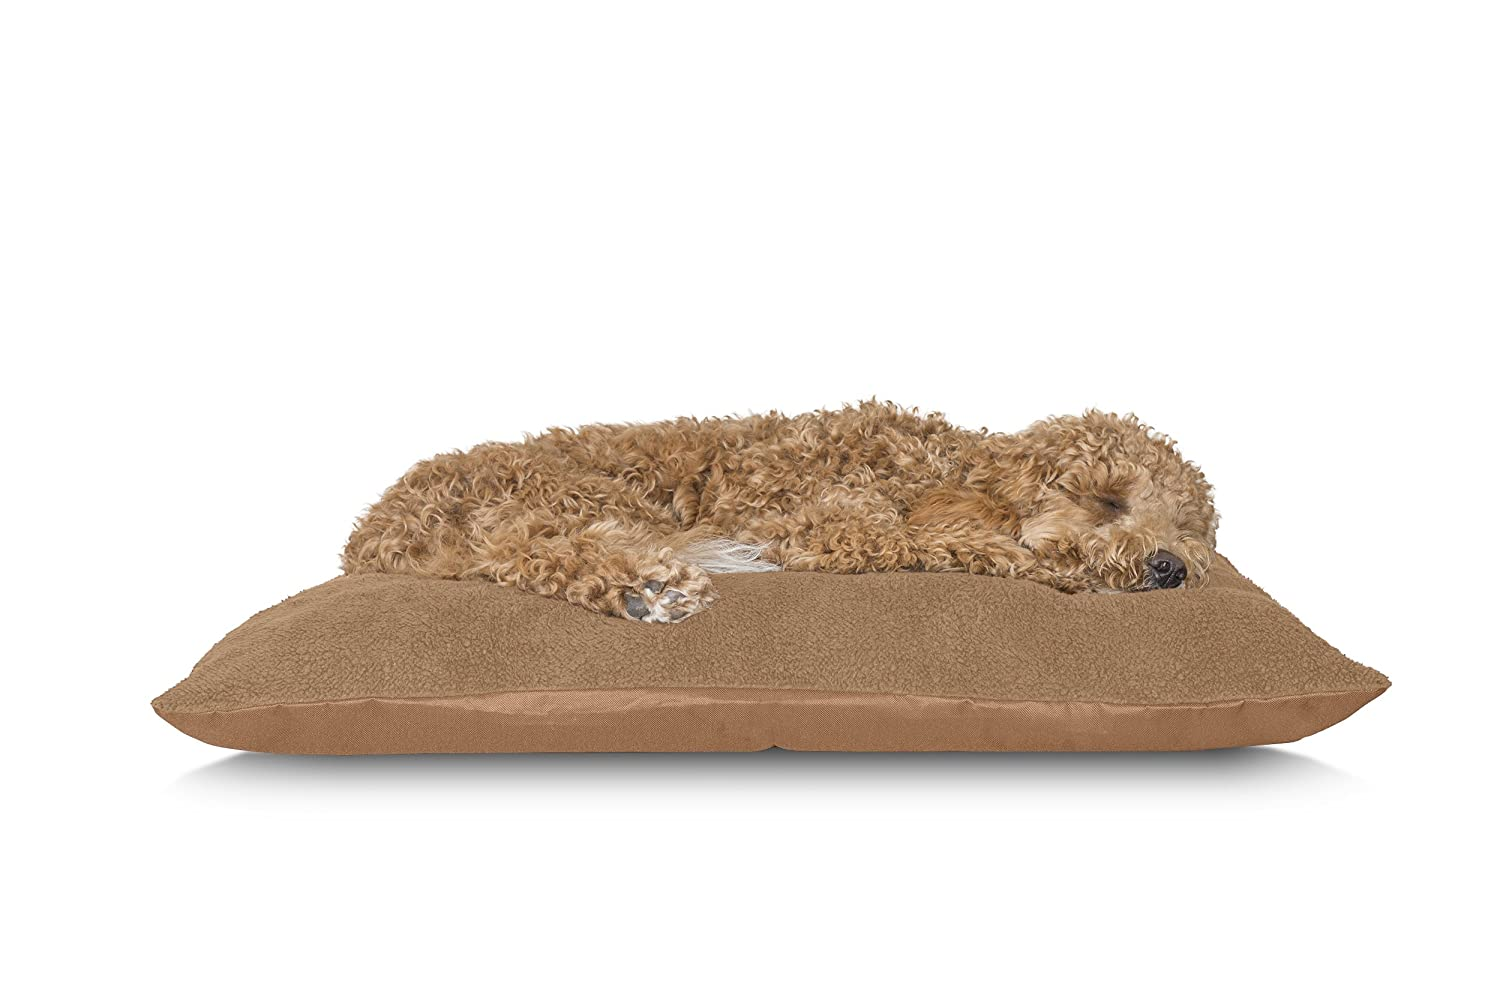 FurHaven Pet Dog Bed   Oxford & Terry Pillow Pet Bed for Dogs & Cats, Camel, Large